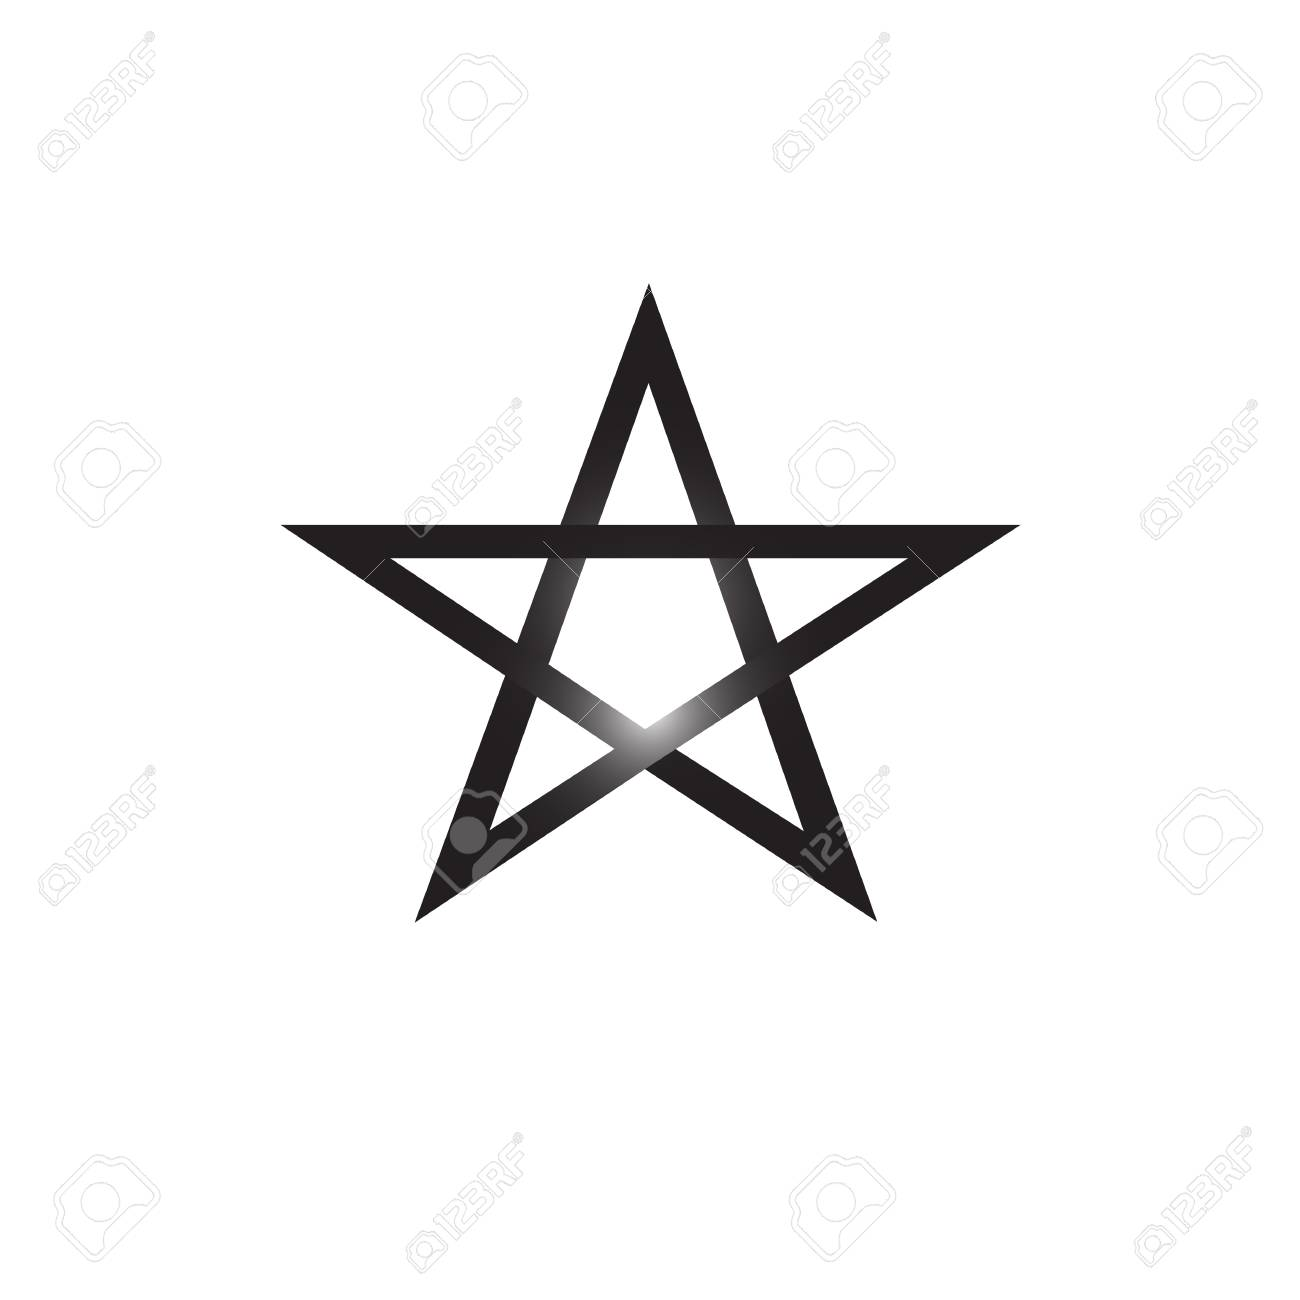 Pentagram vector icon isolated on white background satanic sign pentagram vector icon isolated on white background satanic sign stock vector 88859128 biocorpaavc Choice Image